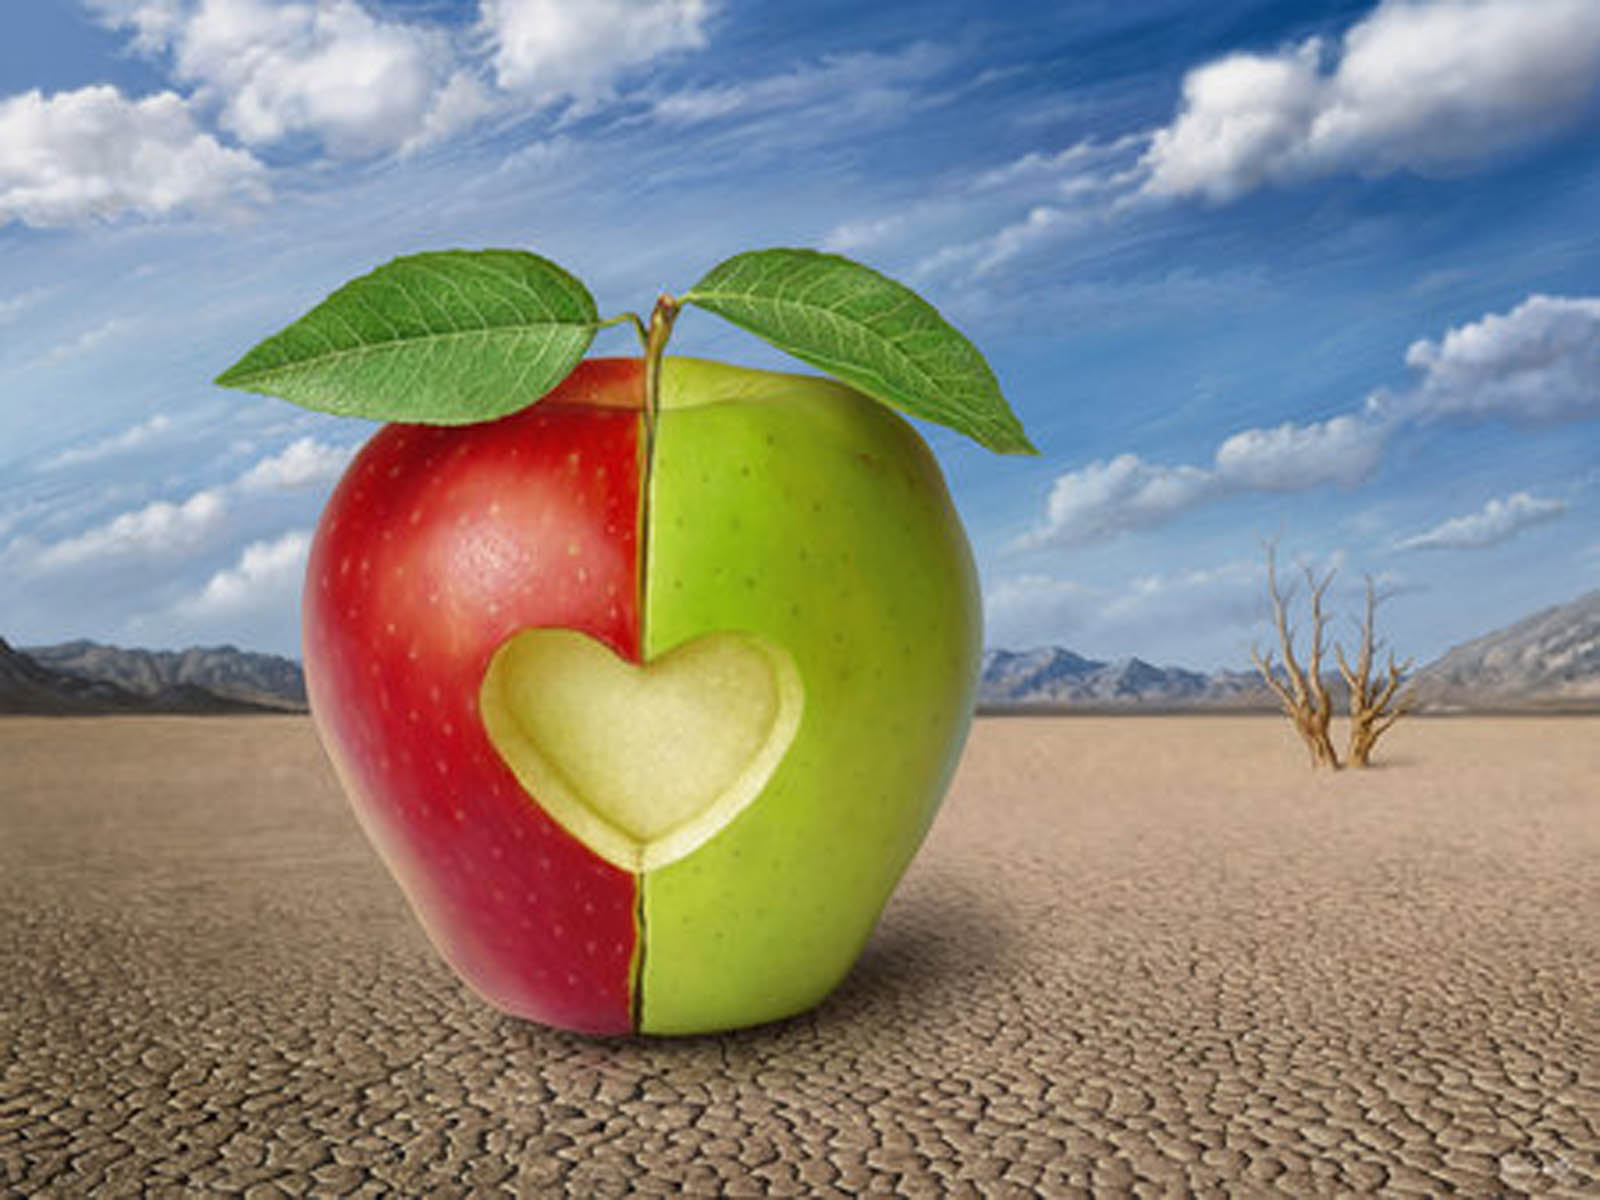 wallpapers Apple Love Wallpapers 1600x1200